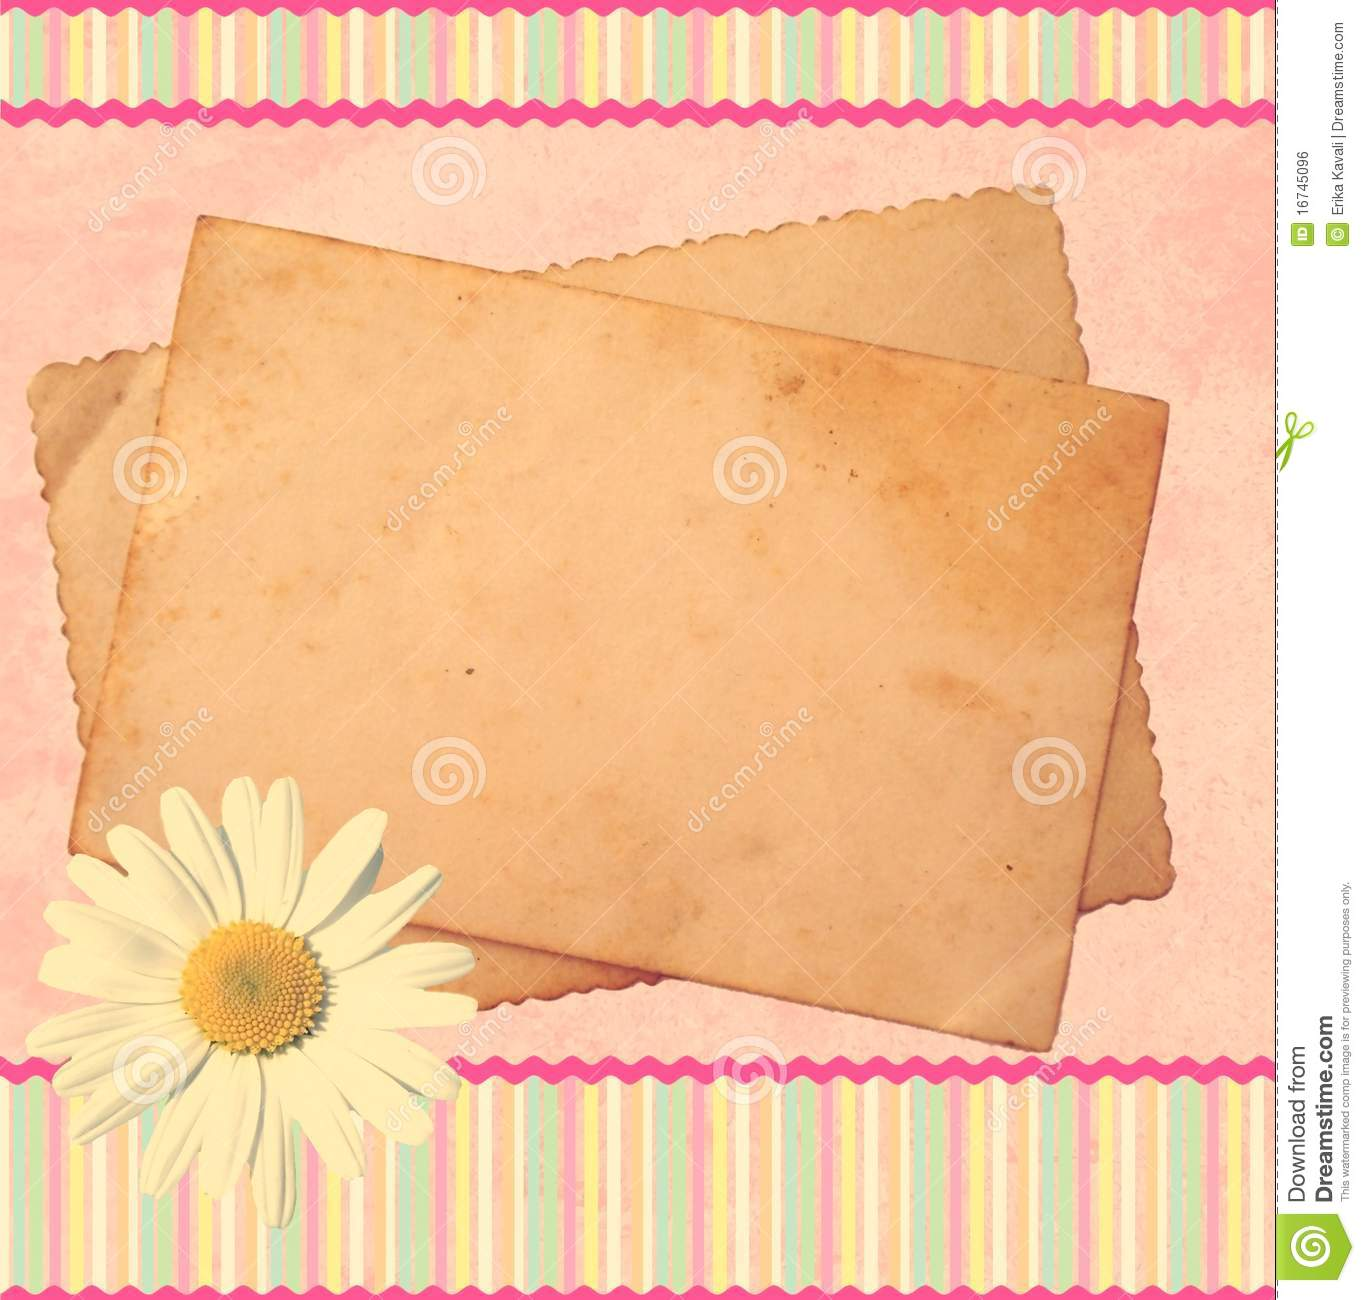 Pink Scrapbook Template Royalty Free Stock Photos - Image: 25077028